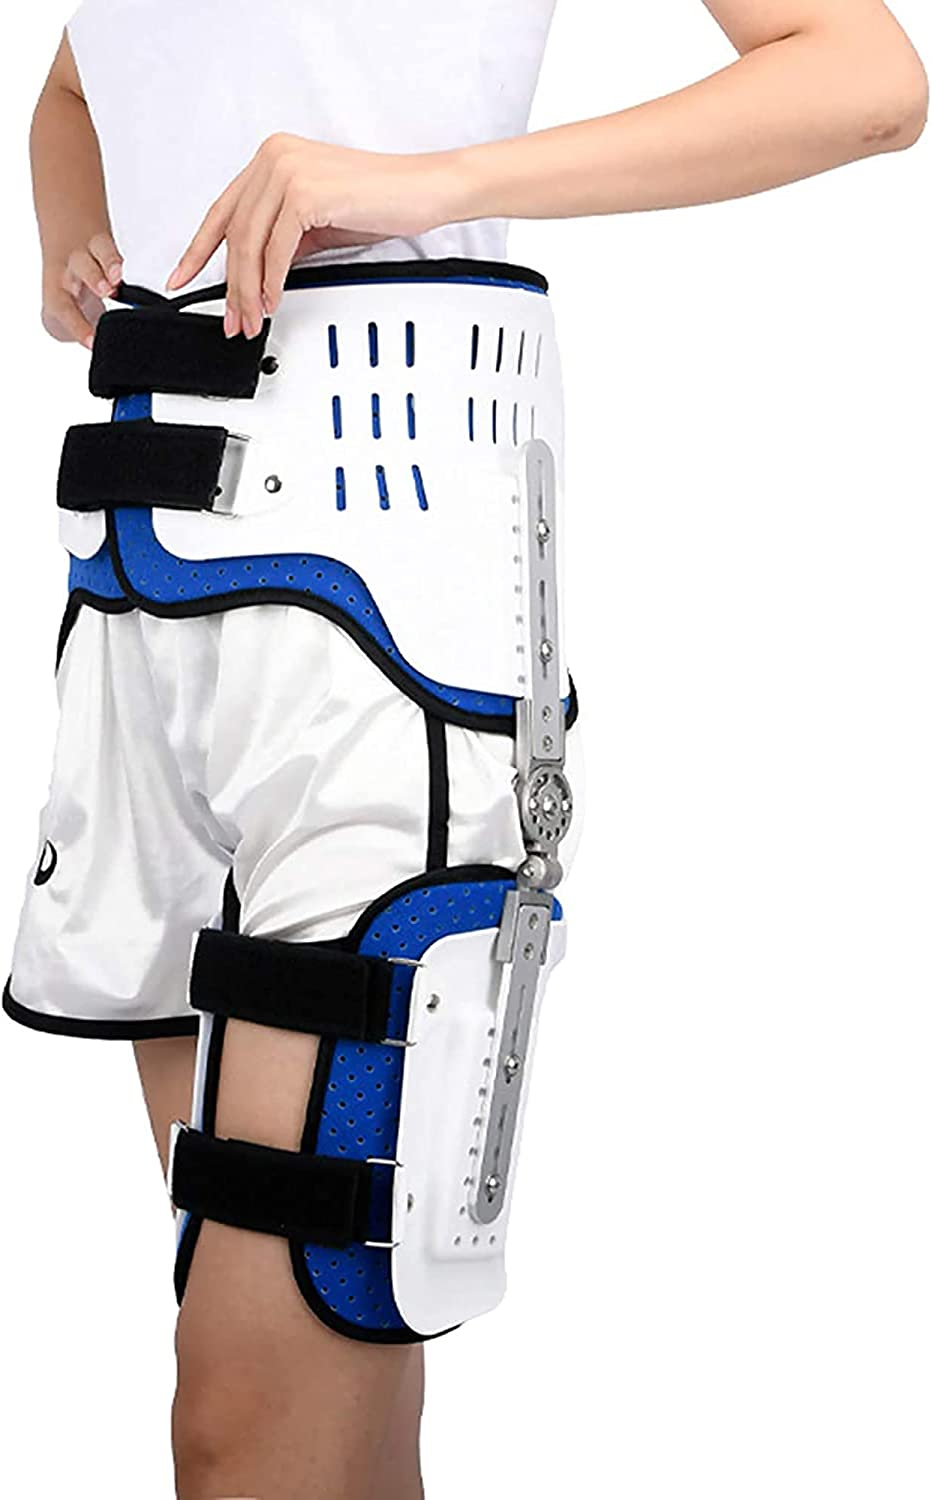 Adjustable Hip Orthosis Adult Fixation New sales Lowest price challenge Brack Joint Abduction